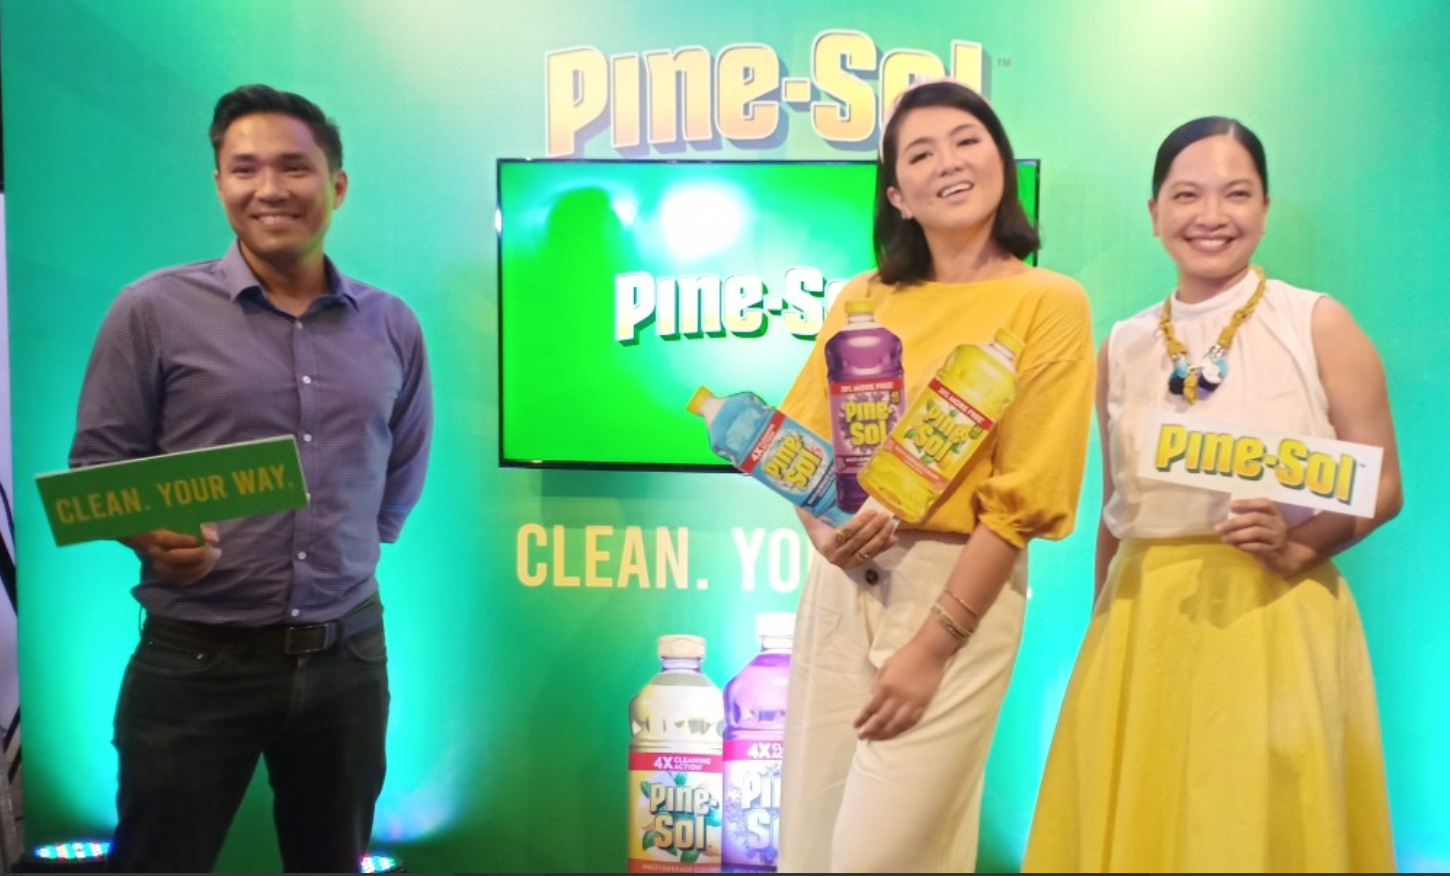 Clear the room, play the music, and move it  for the 'Pine-Sol Cleaning Dance Challenge'